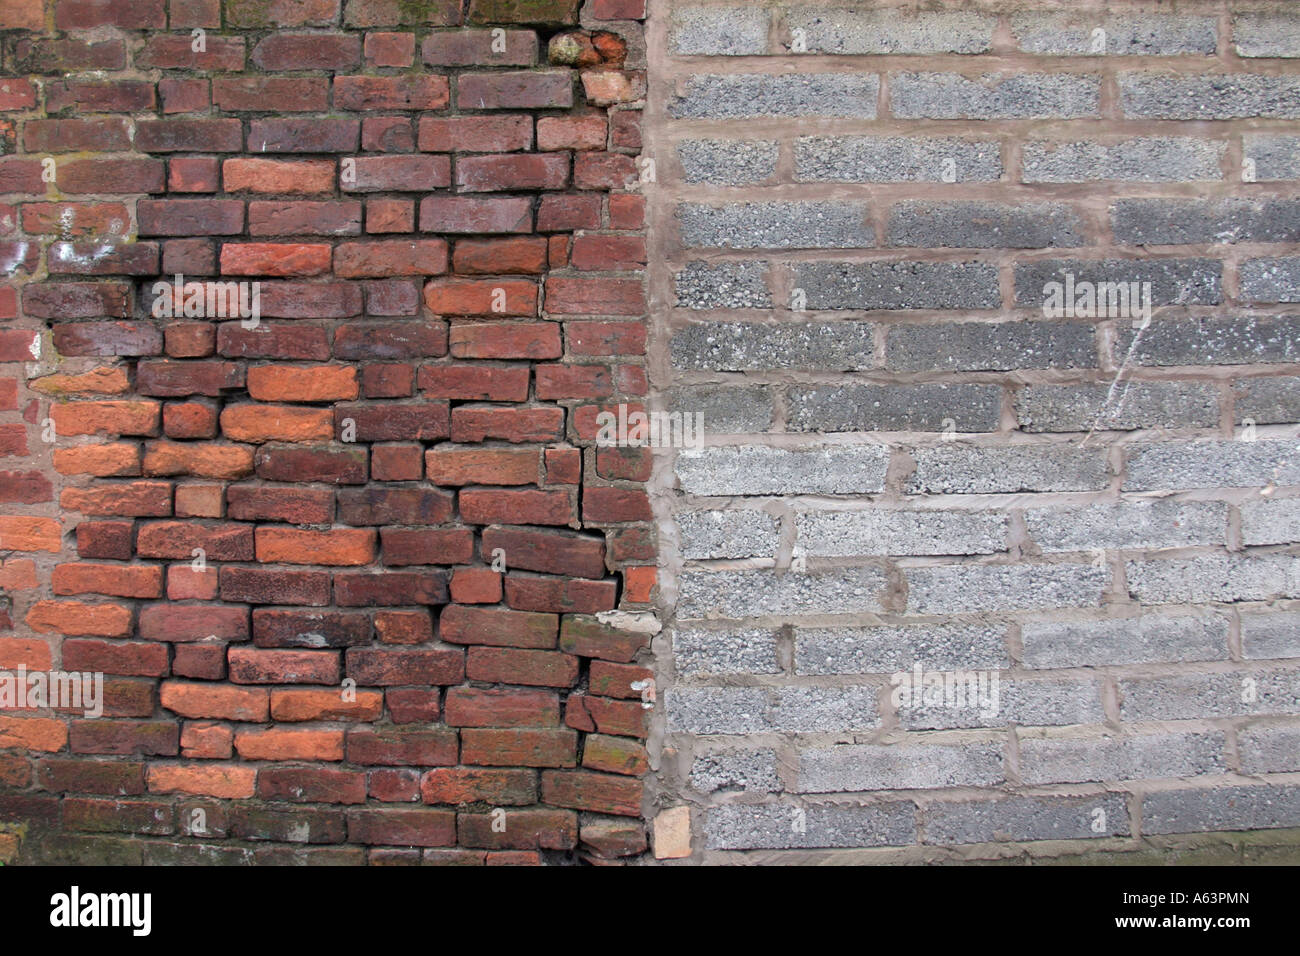 Old Brick Wall Butting On To A Newly Built Breeze Block Wall   Stock Image